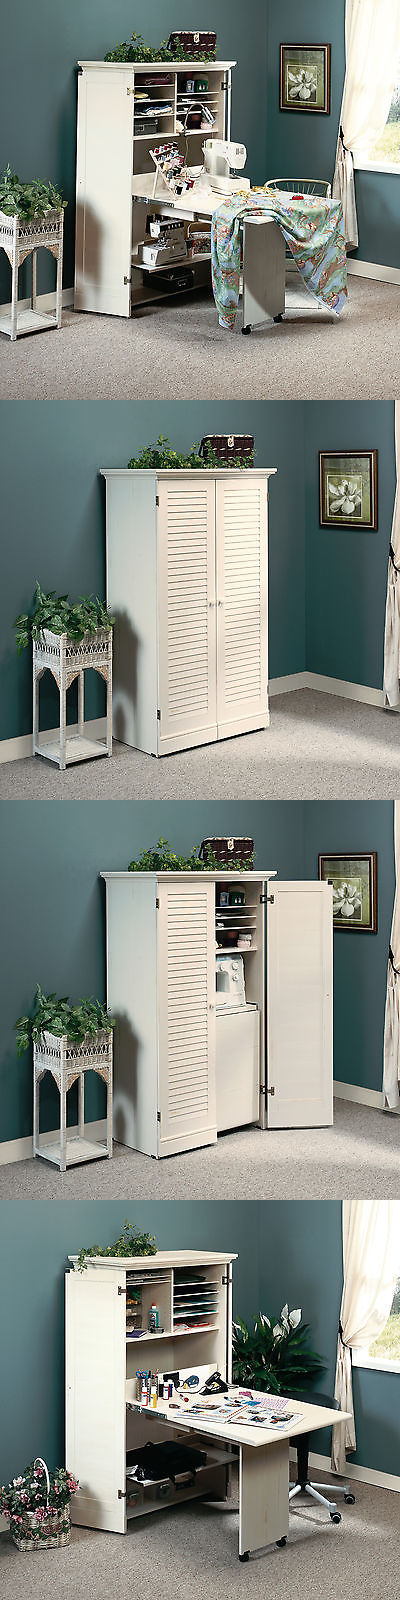 23+ Sauder harbor view craft and sewing armoire antique white ideas